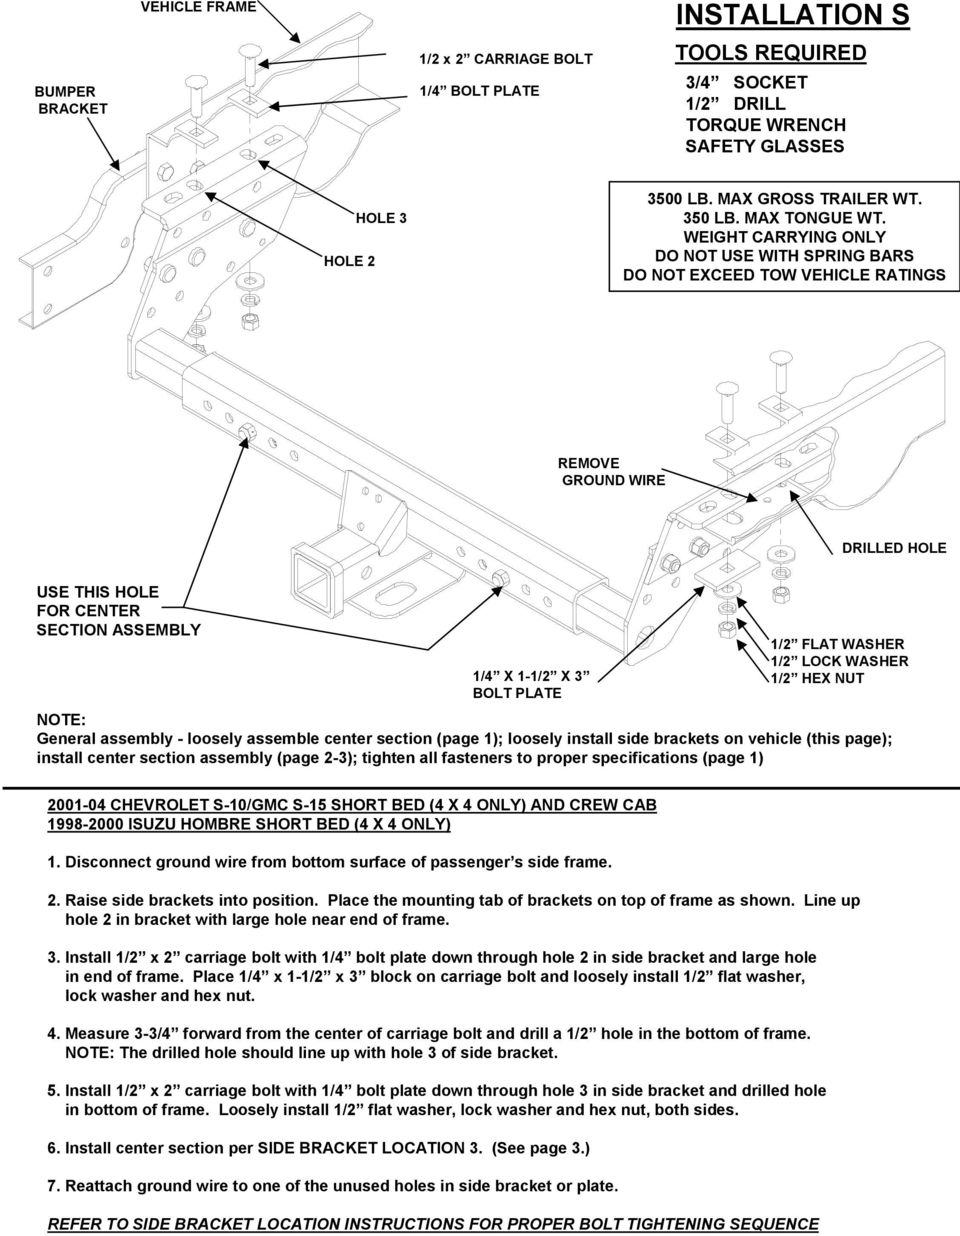 Installation Instructions Small Pickup Multi Fit Pdf 97 Blazer Wiring Diagram Washer Weight Carrying Only Do Not Use With Spring Bars Exceed Tow Vehicle Ratings Remove